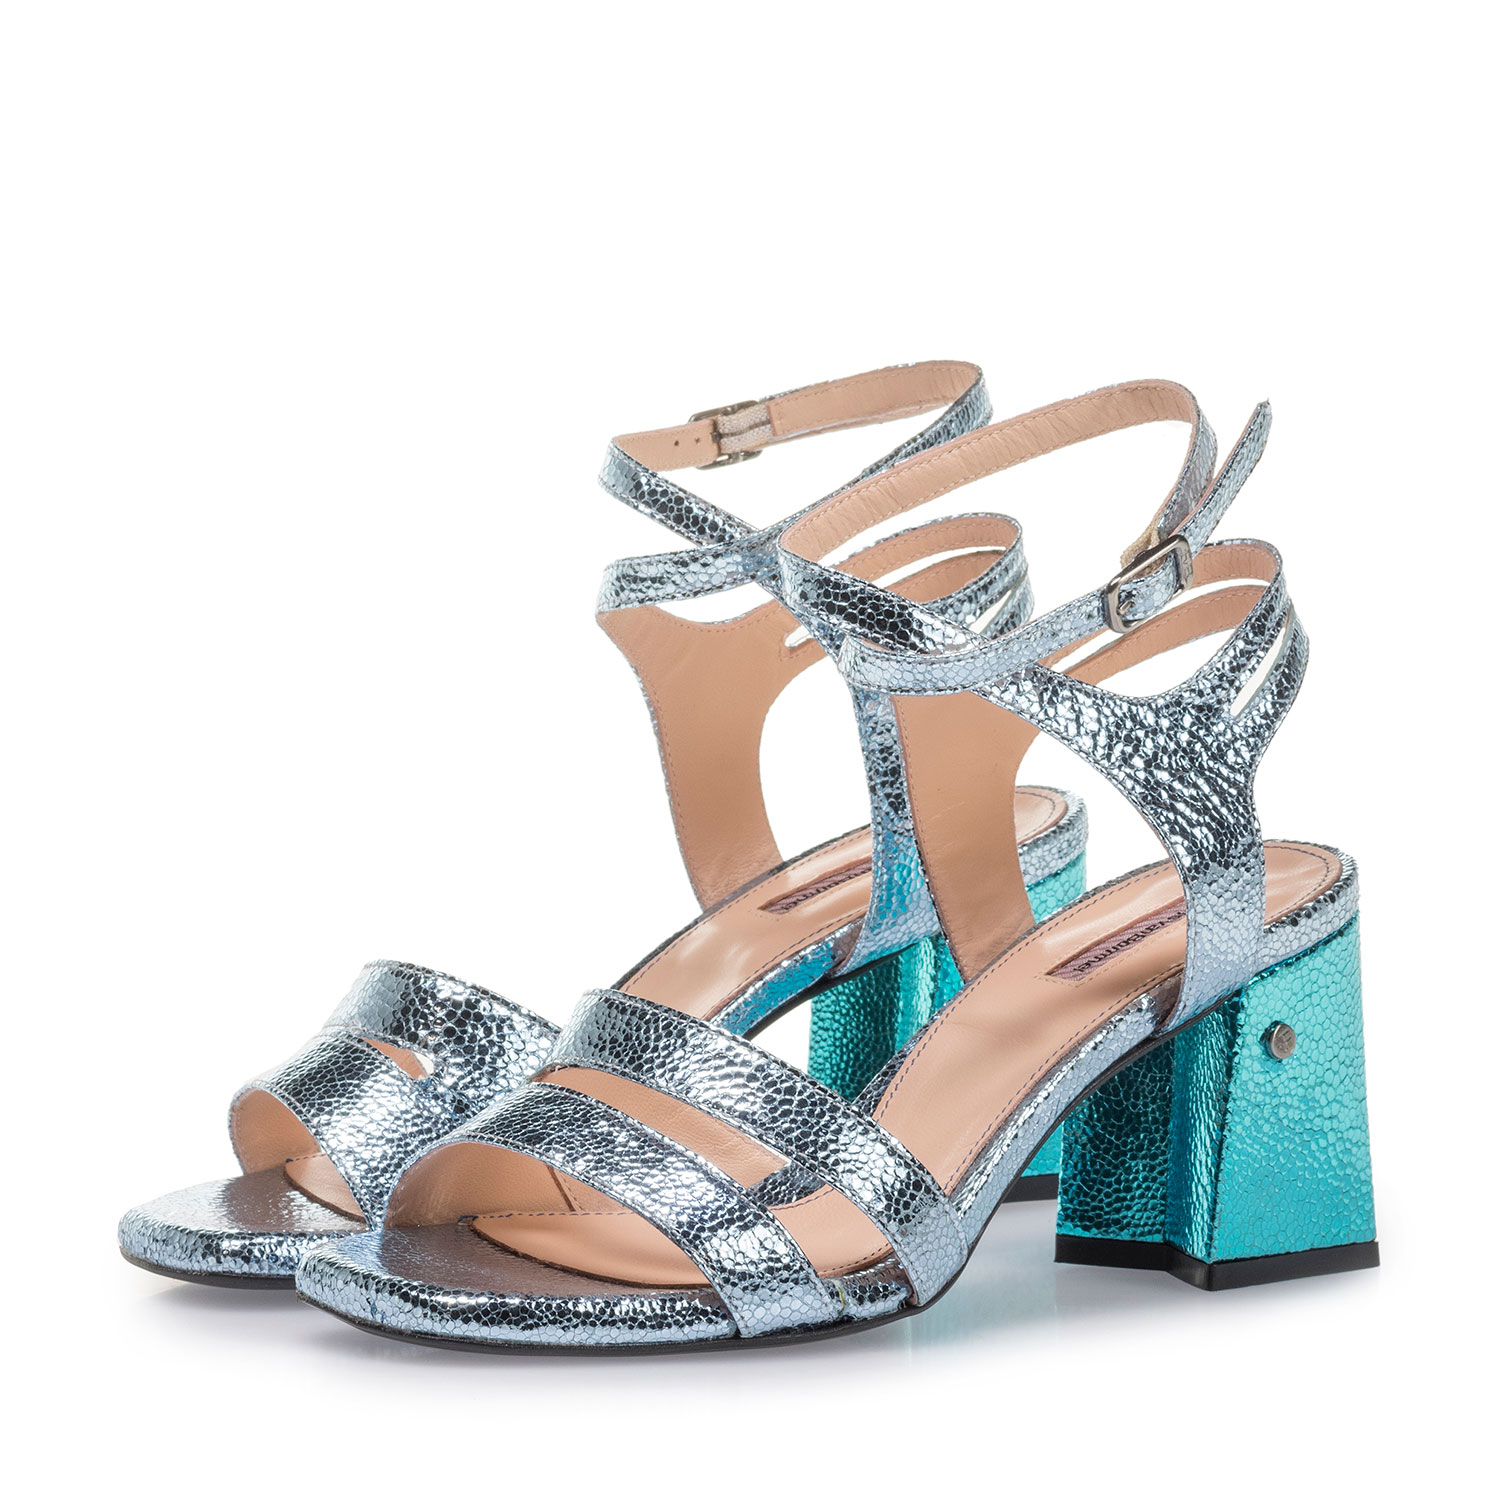 85943/01 - High-heeled sandals with light blue metallic print